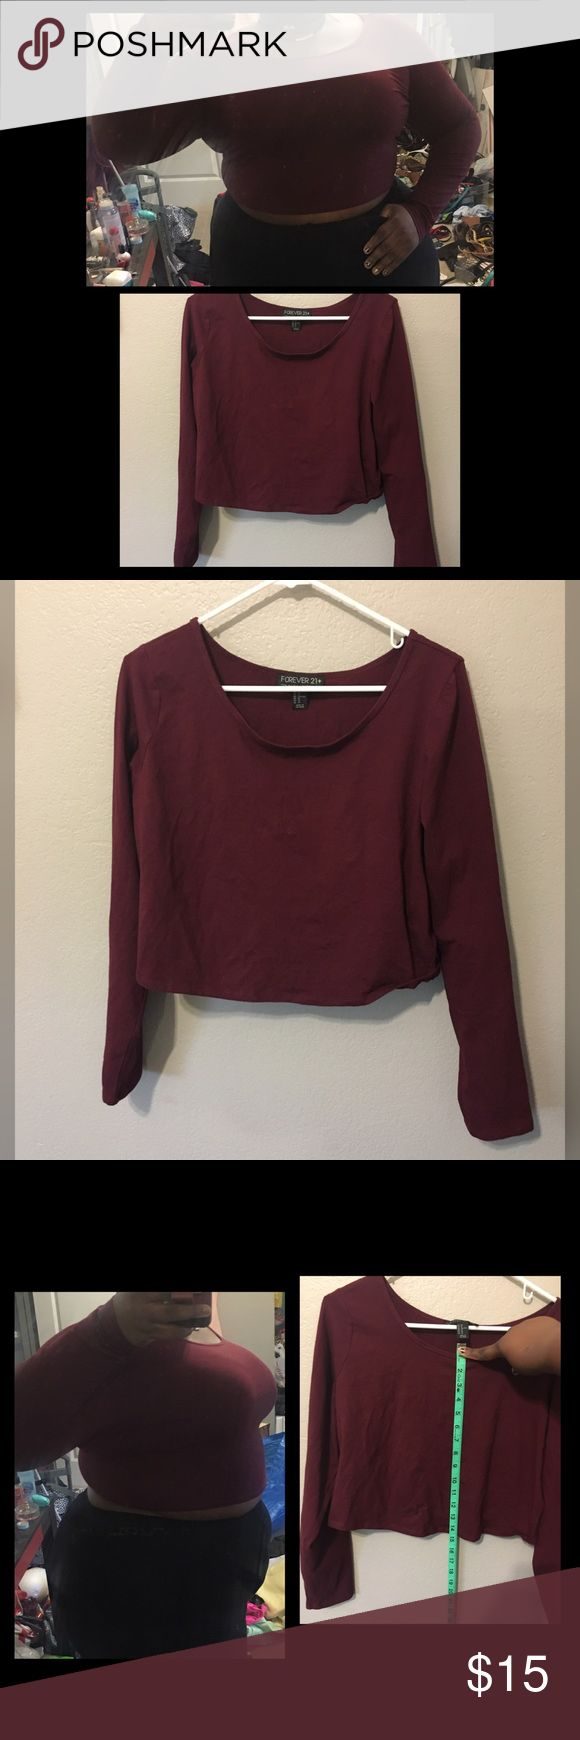 Forever21 crop top size 3x Purchased from forever21 burgundy red the top is lightweight but can be warm on fall days it stretches pretty nice its fits me im 42C cup and five foot eight size 2/3 in torrid its long sleeve worn twice comes from pet friendly smoke free home Forever 21 Tops Crop Tops